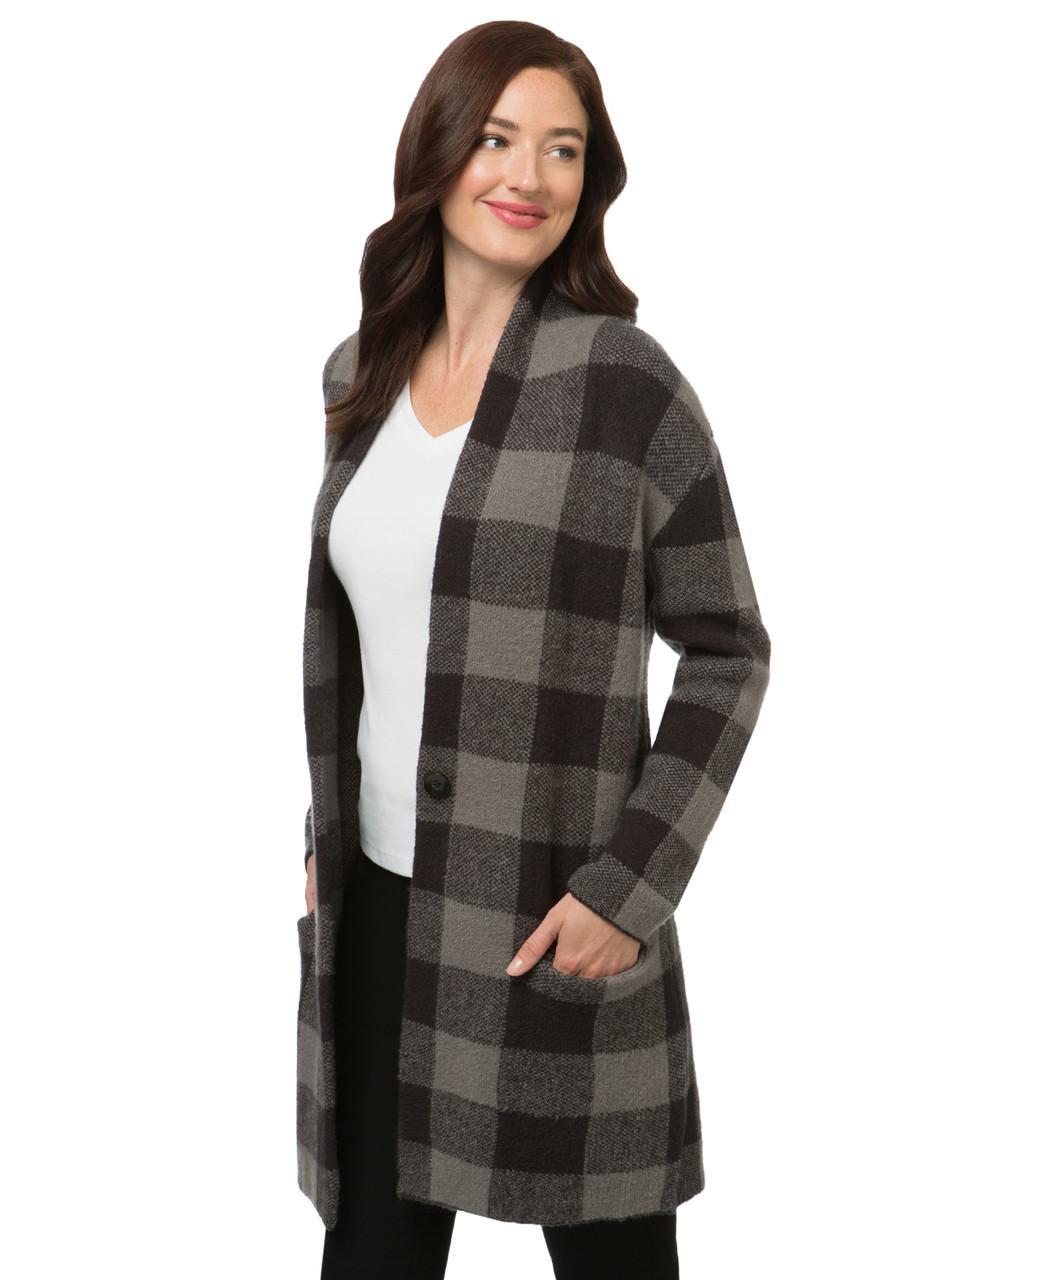 special discount of clearance sale choose latest Shawl Collar Checkered Sweater Coat